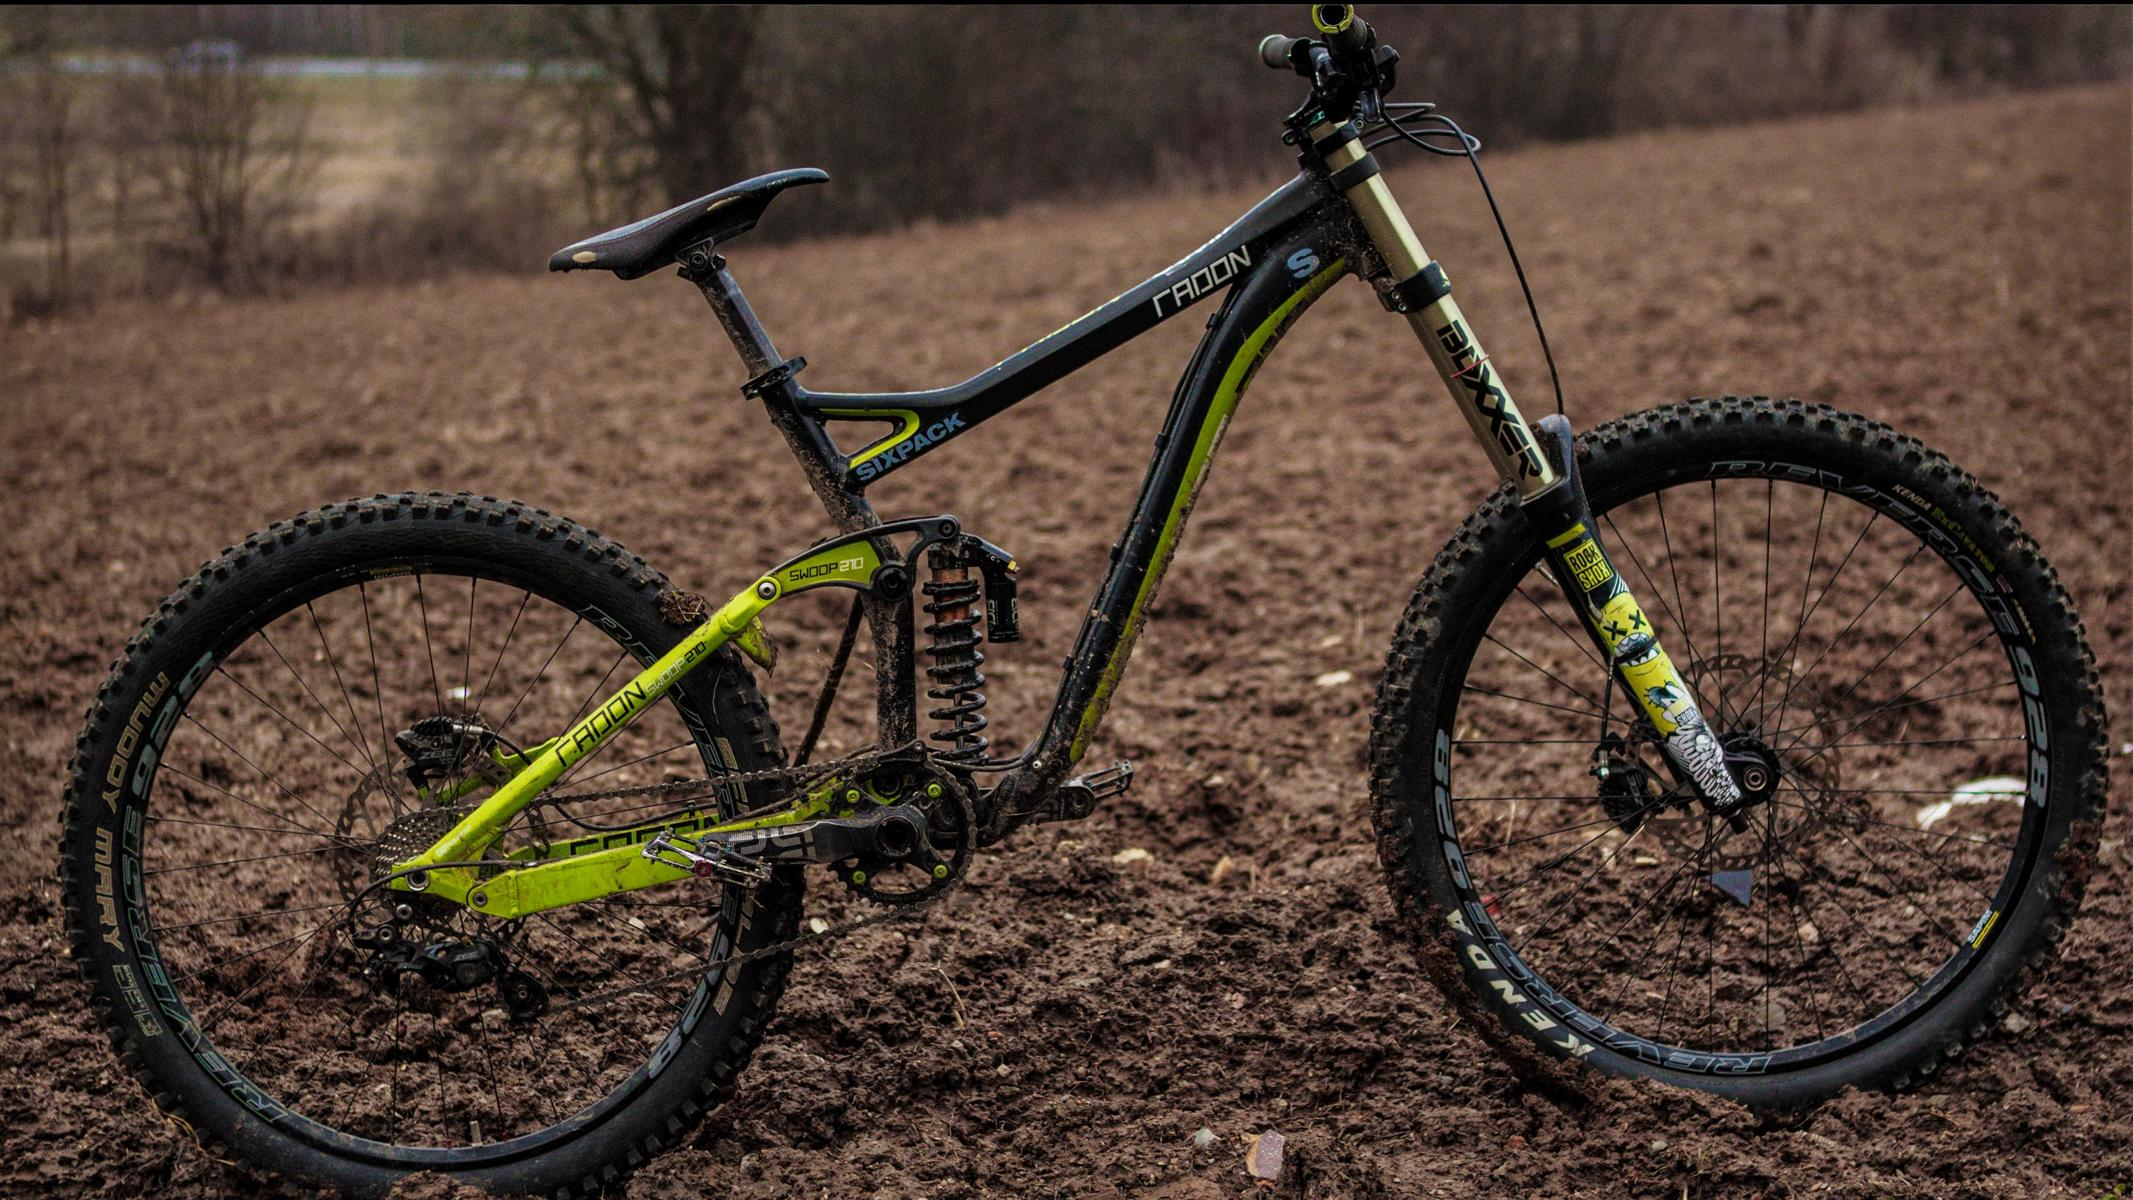 Radon swoop 210 Downhillbike